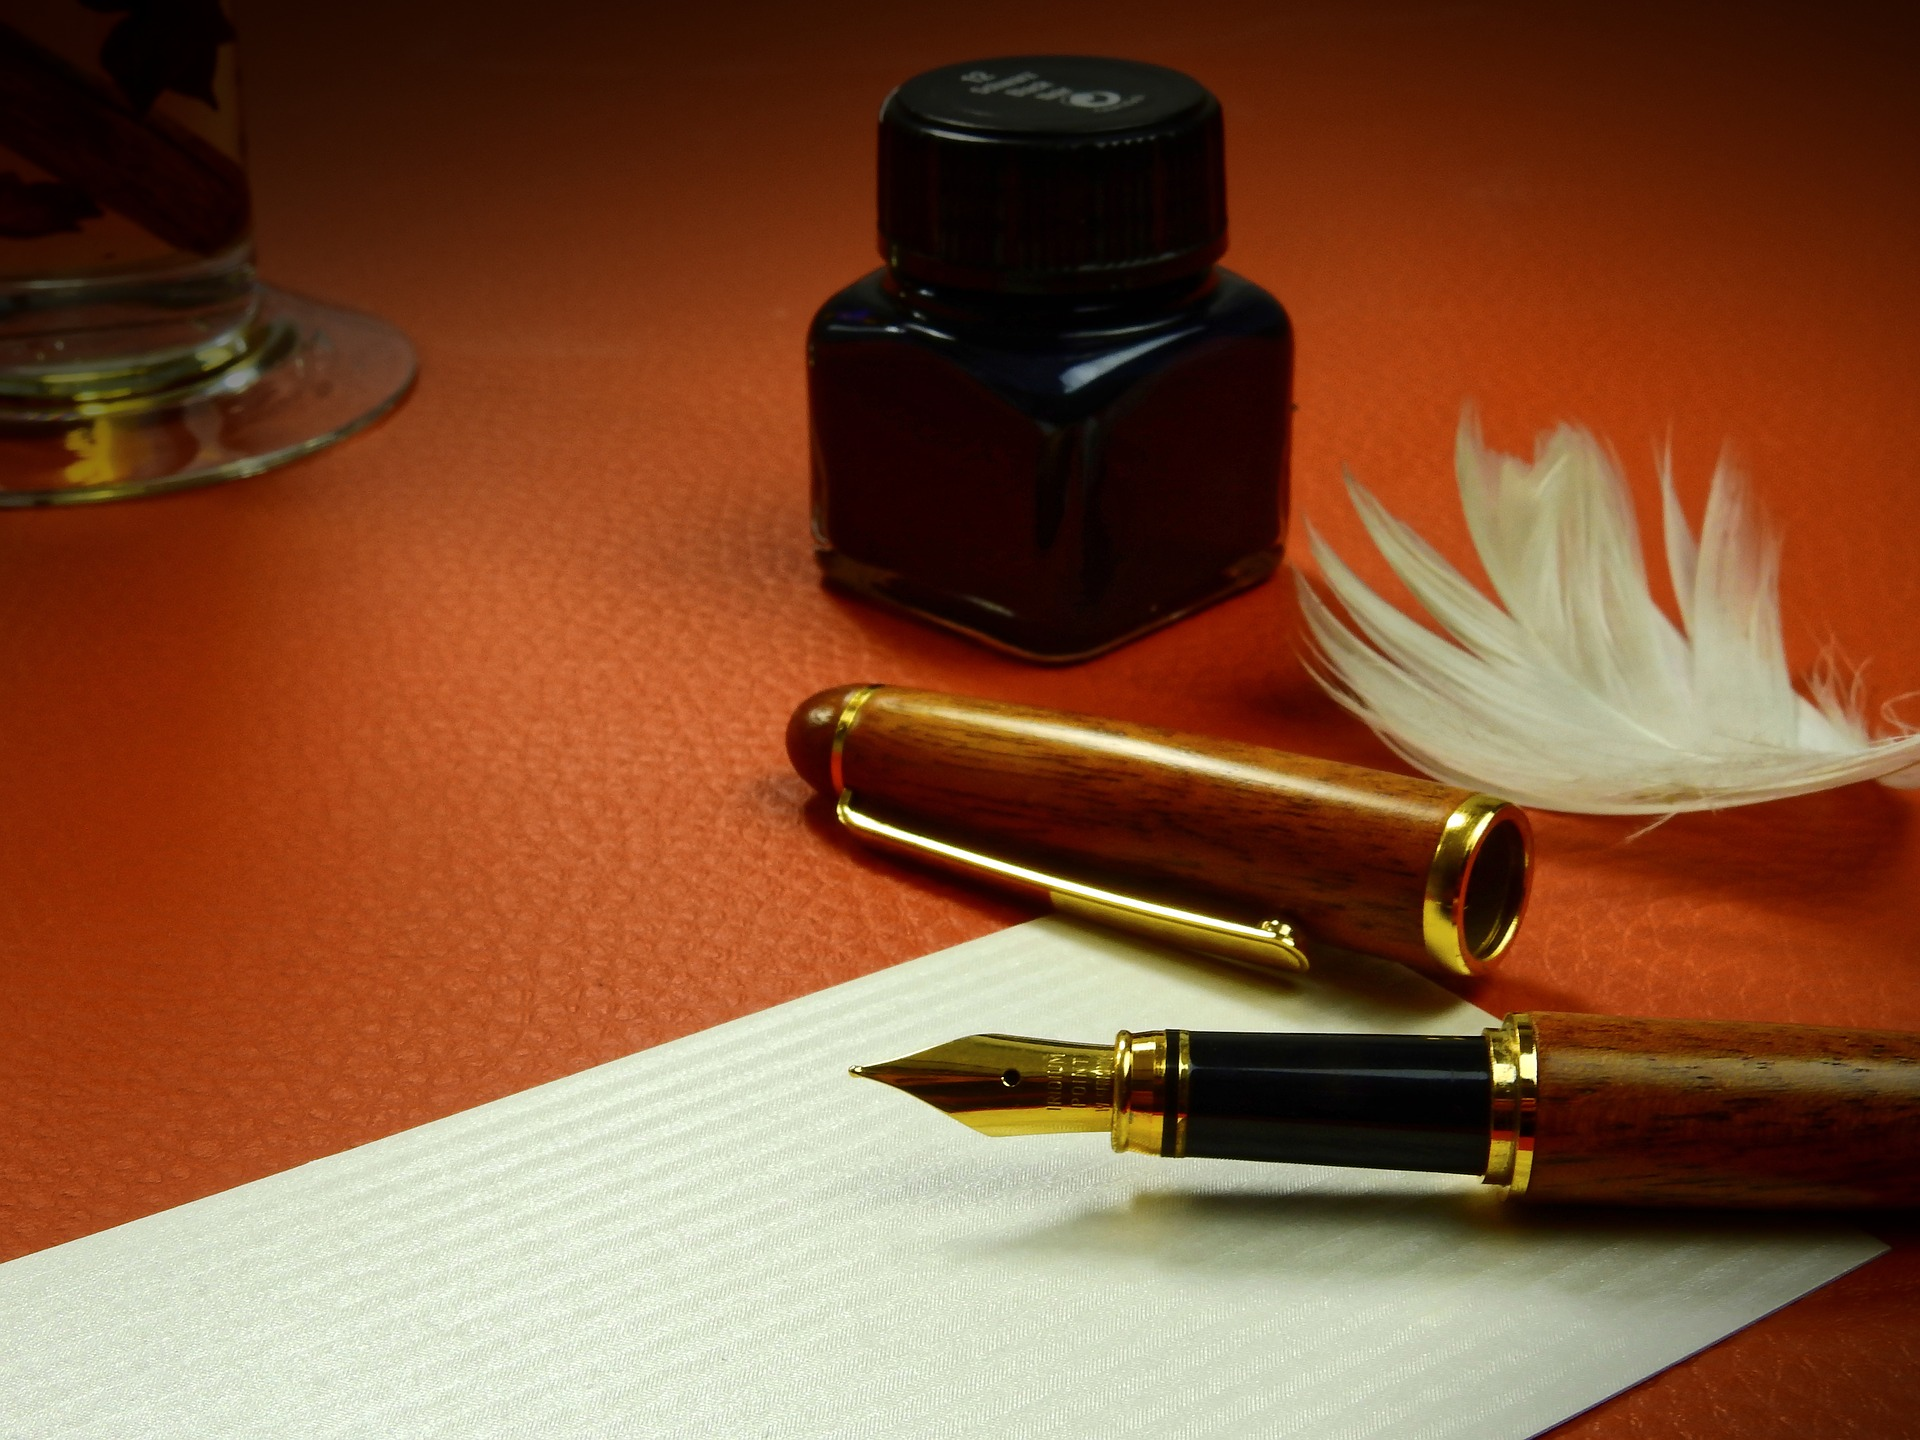 classic ink pen, liquid ink in jar, writing paper, feather, Idris Elba quote,